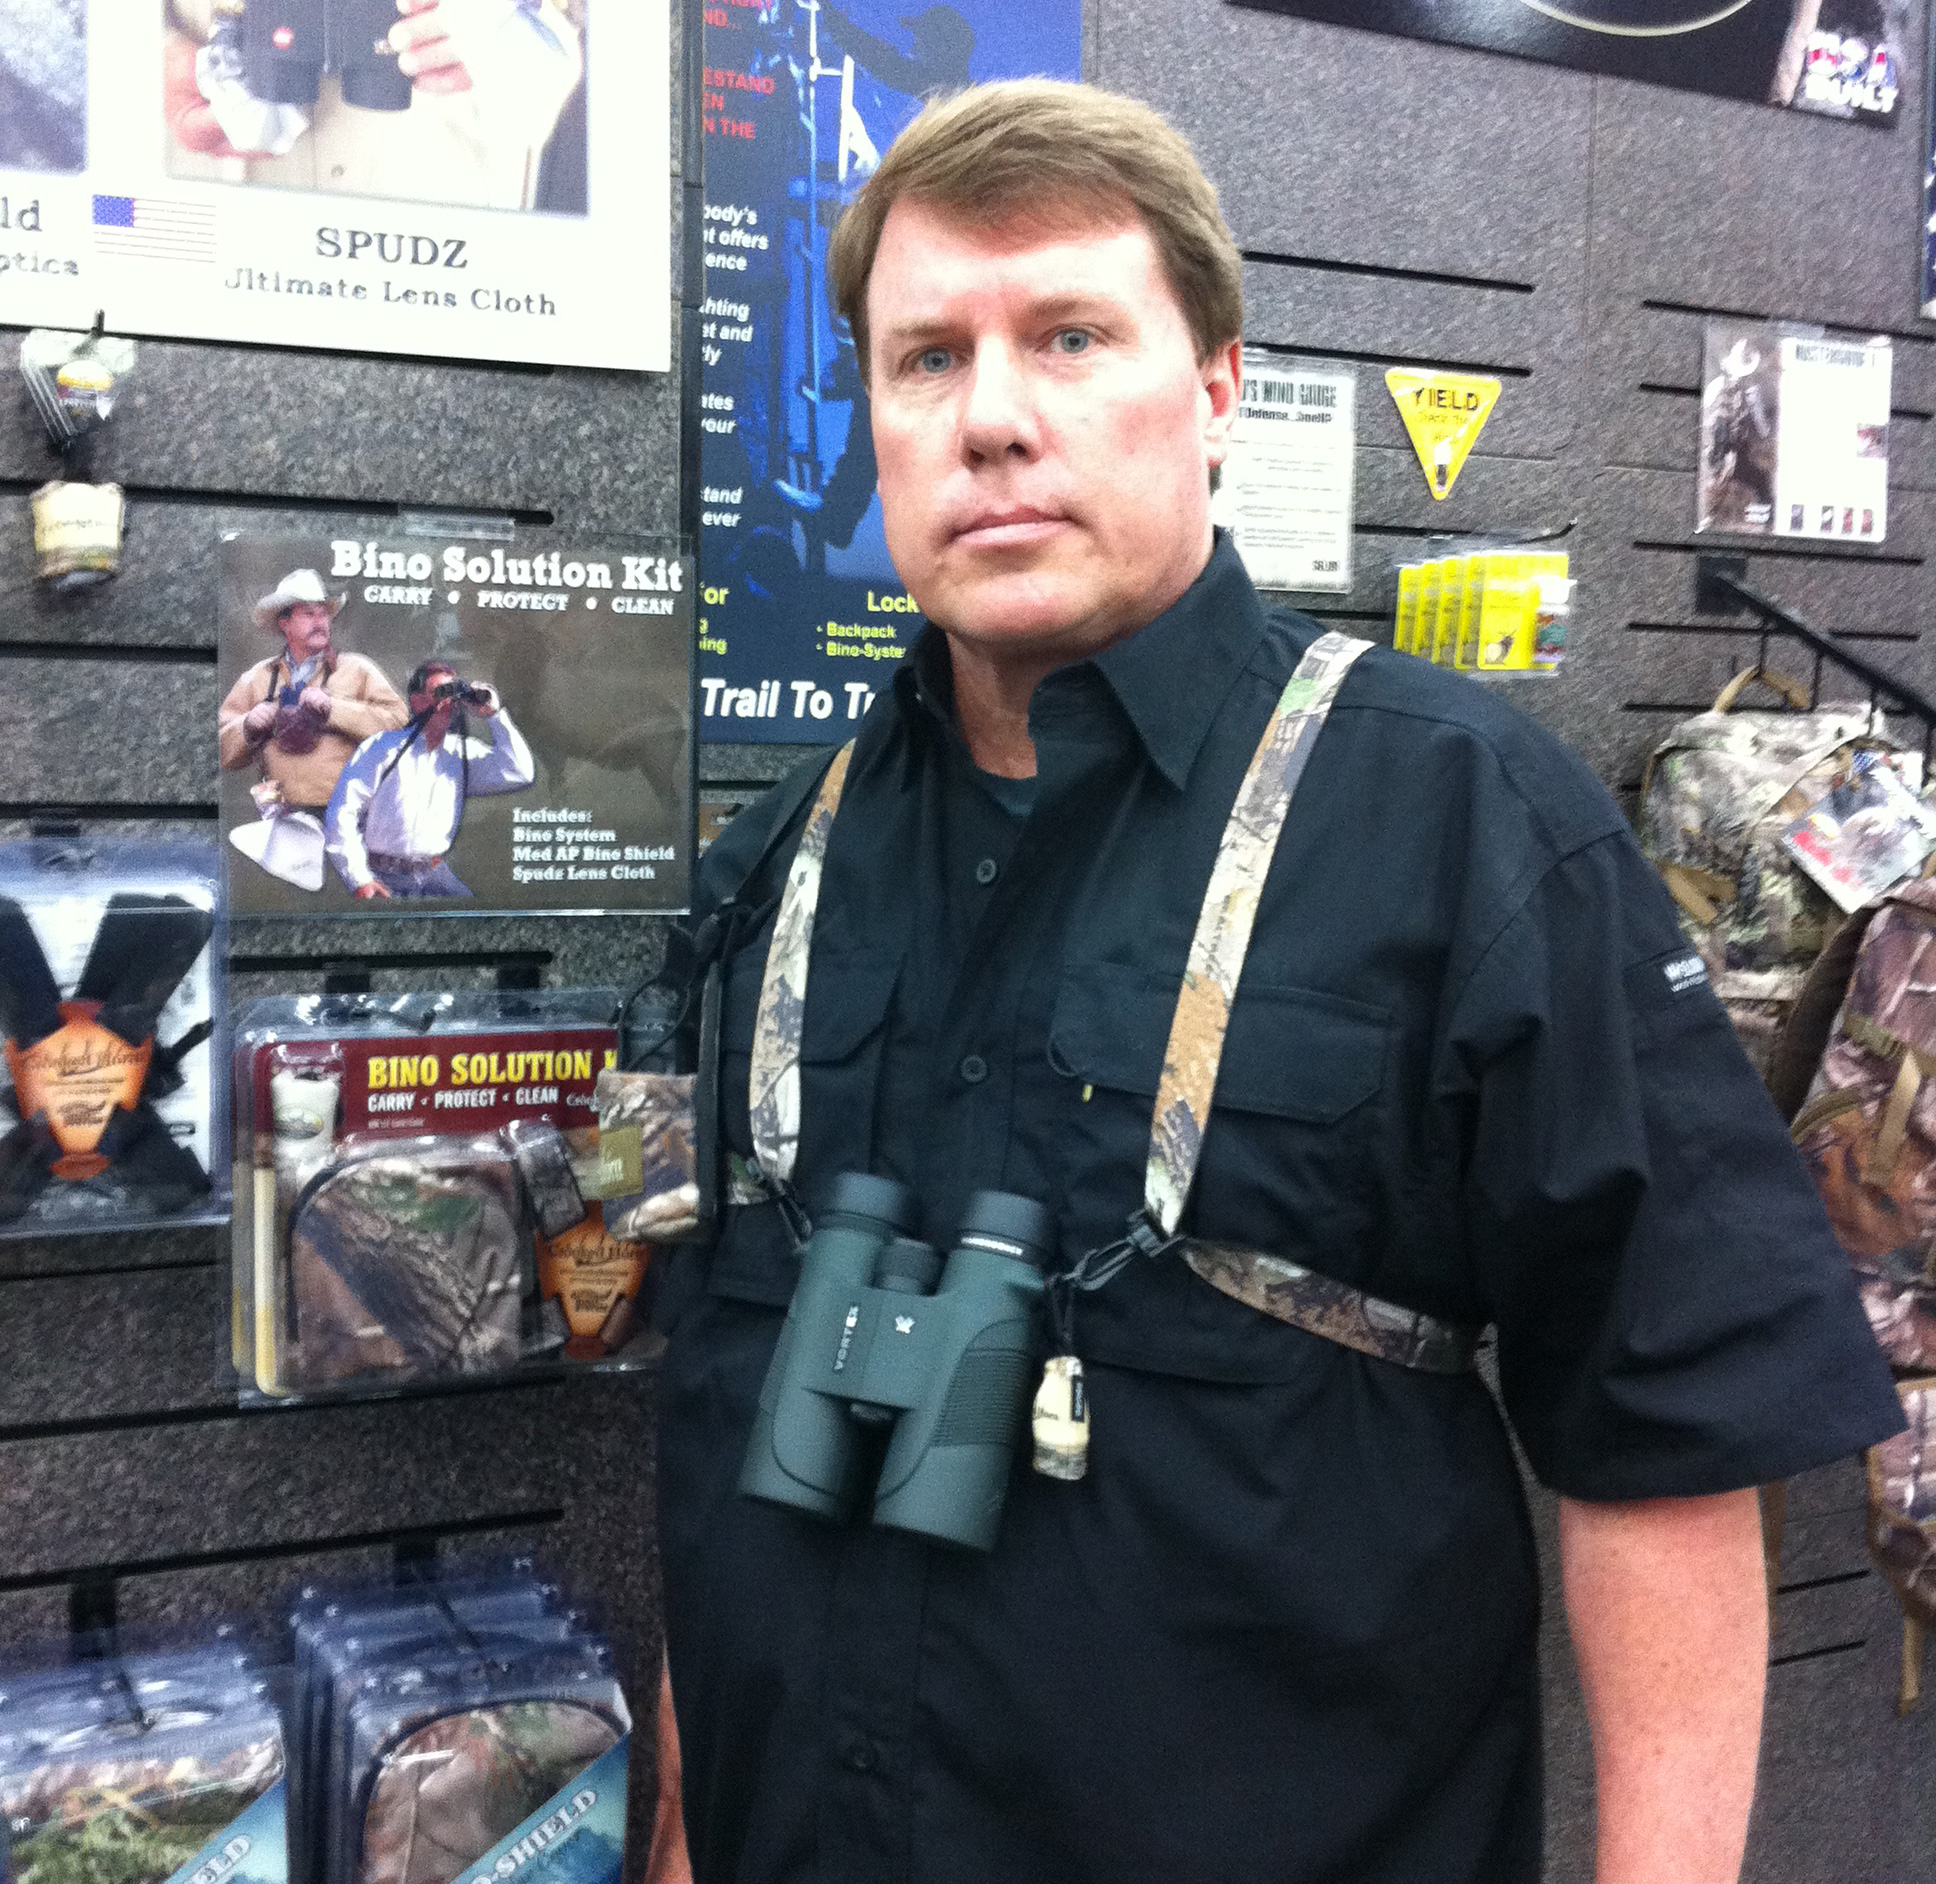 Entertainment Scott checking out the RF Hookup binocular/rangefinder system from Crooked Horn Outfitters.